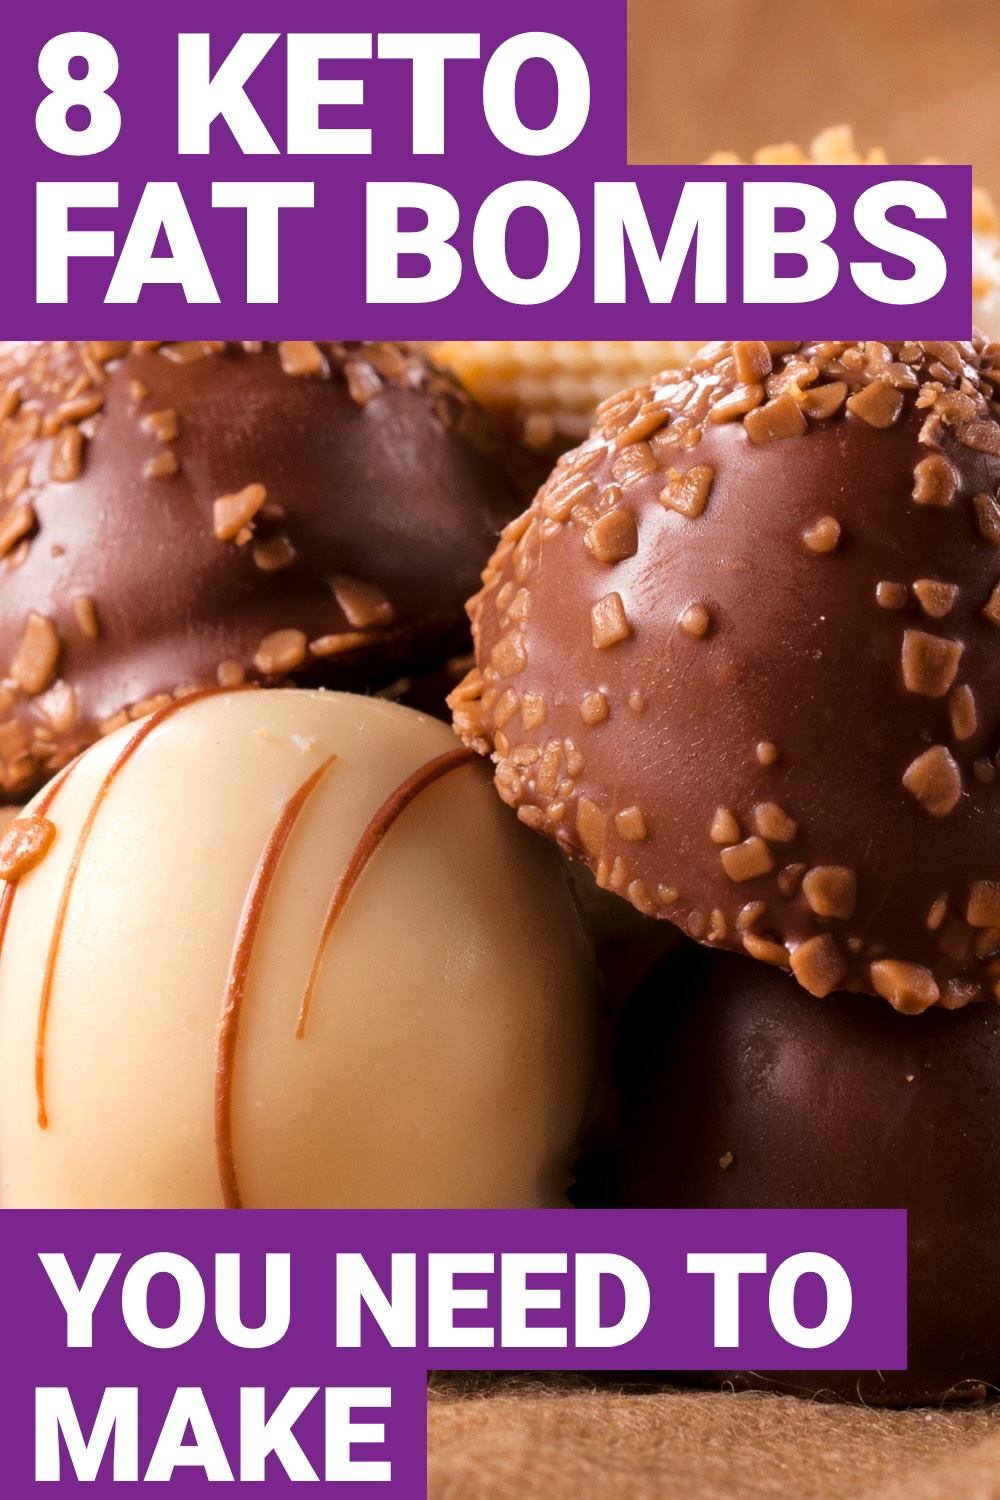 On the ketogenic diet, reaching your fats can make getting into ketosis a little difficult. Here are 8 keto fat bombs you need to make right now.